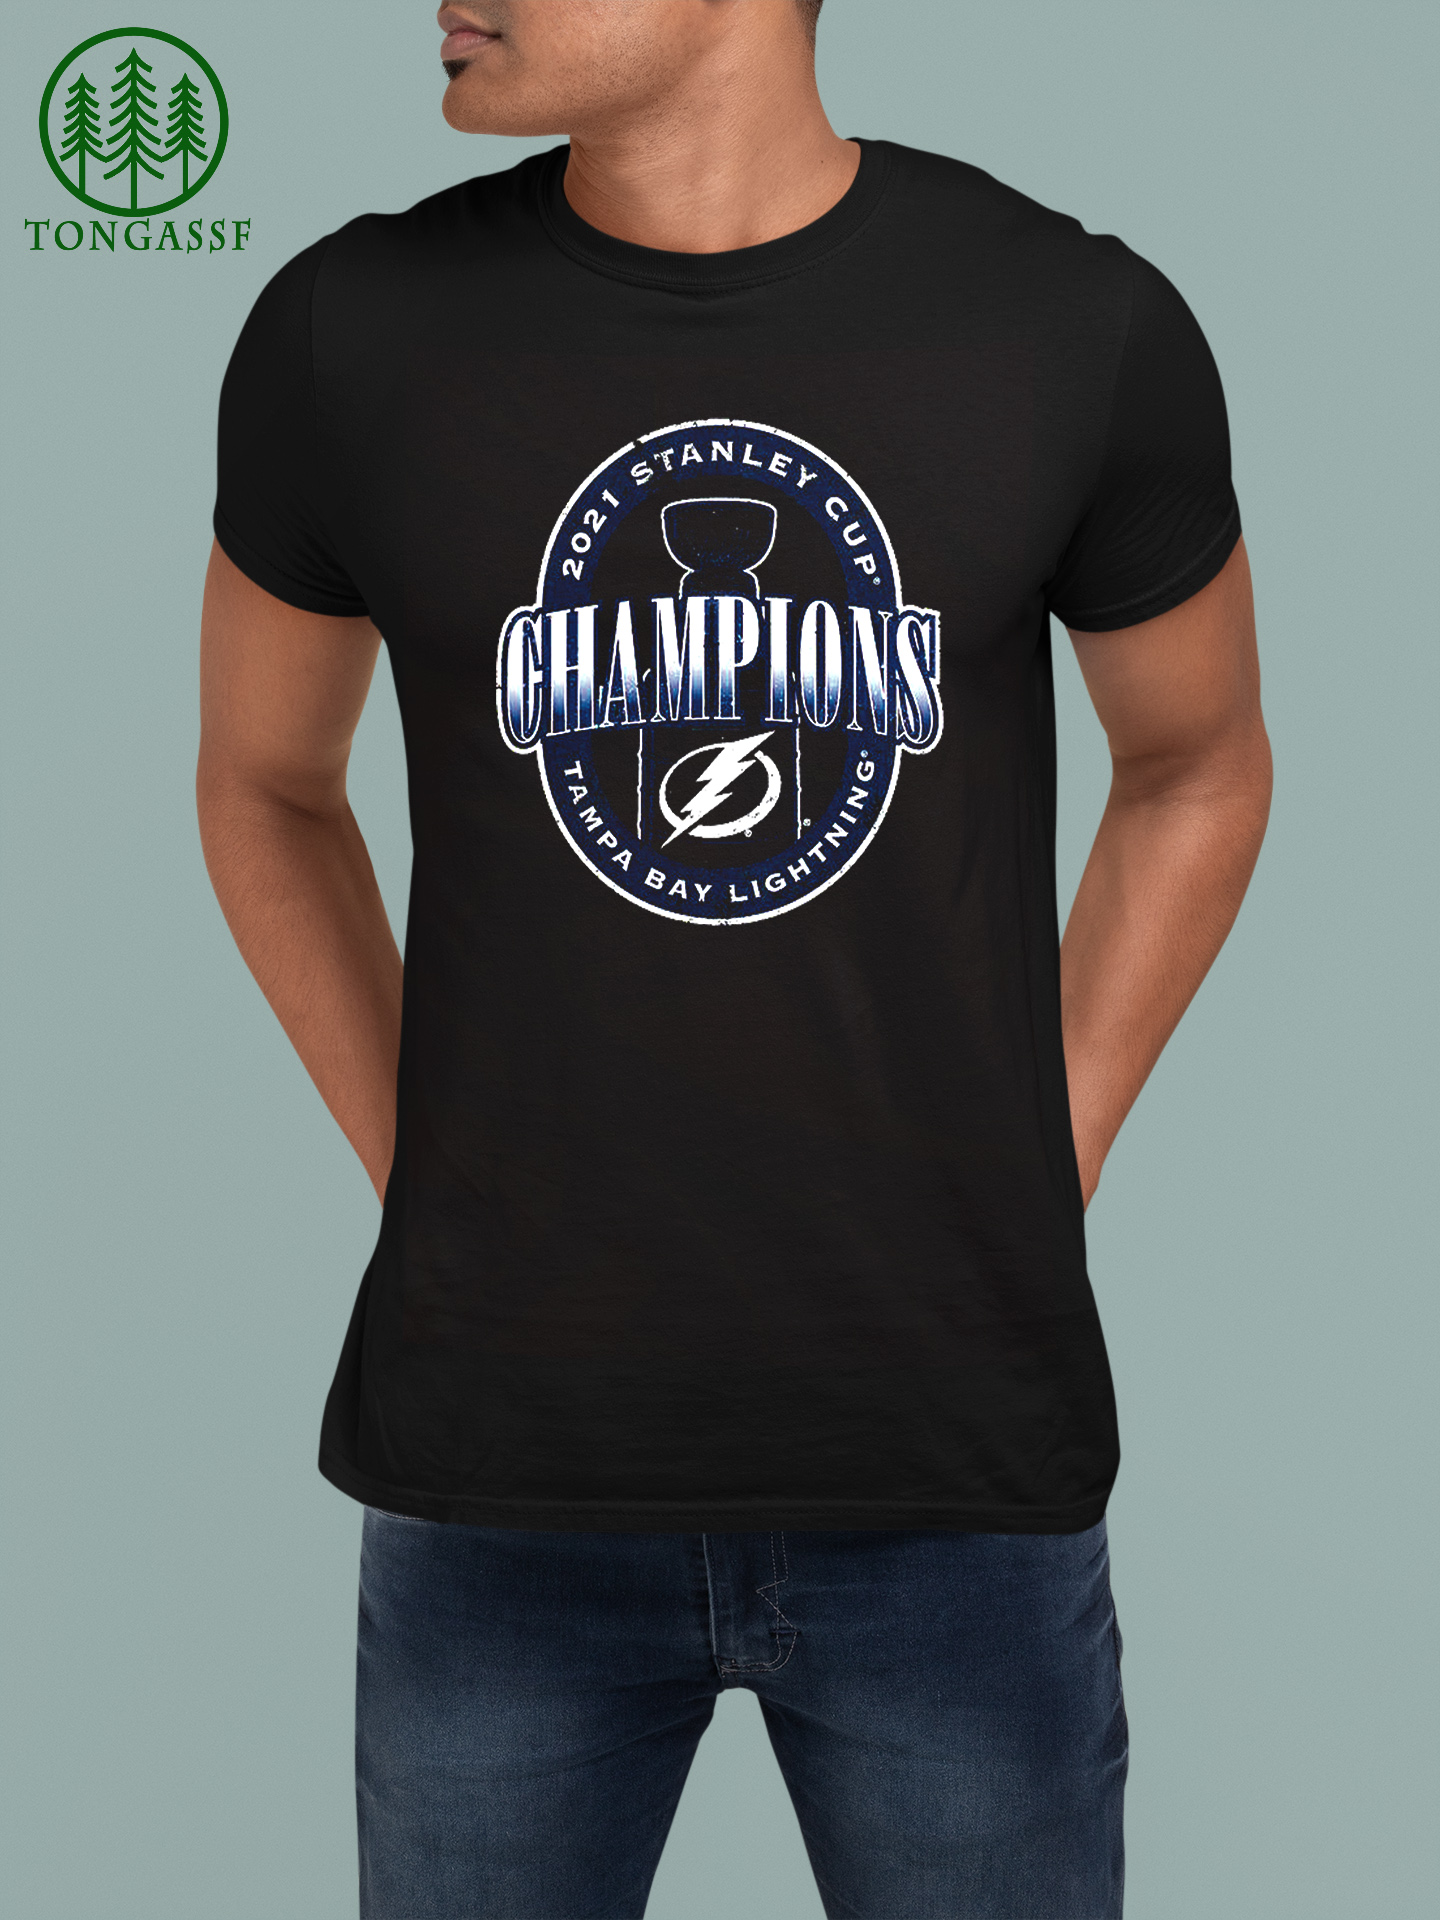 2021 Stanley cup champions tampa bay lightning the champion 2021 t shirt